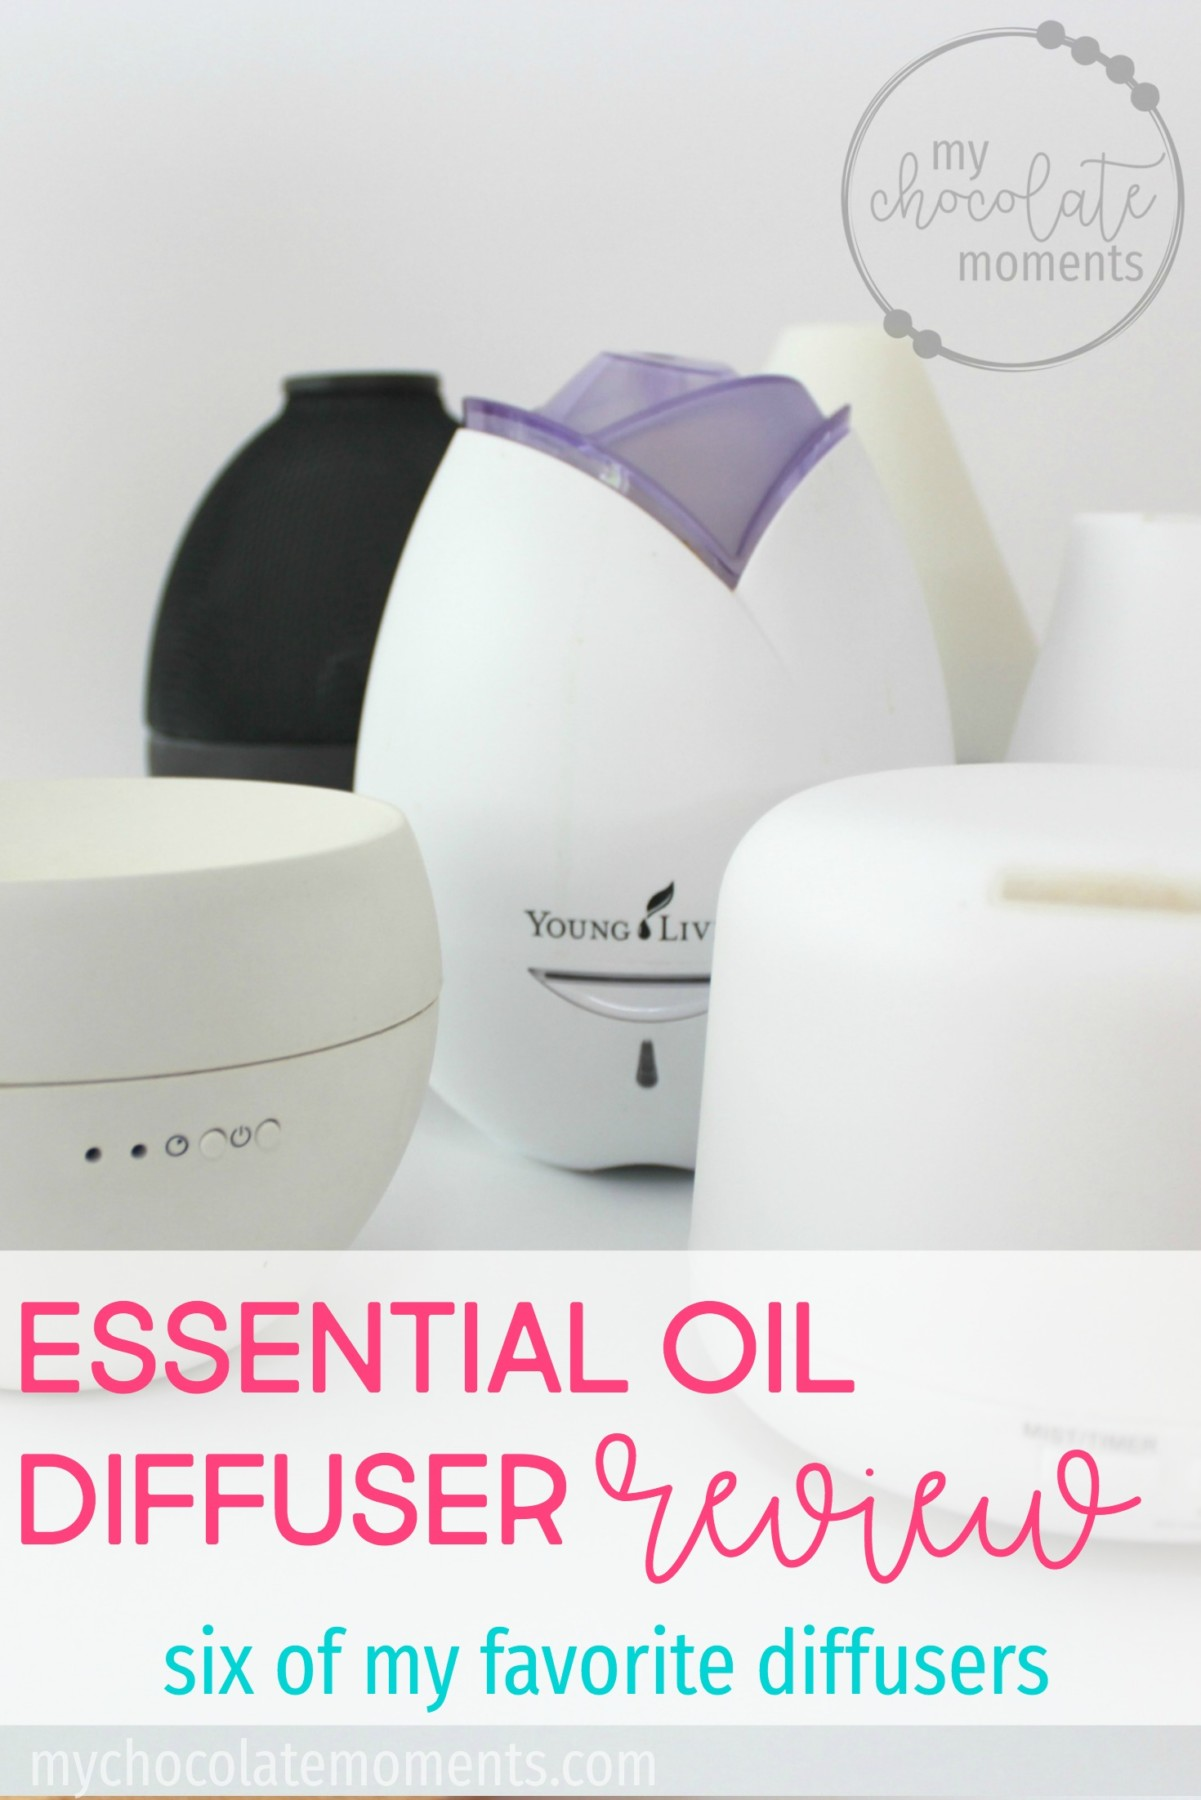 essential oil diffuser review my favorite diffusers